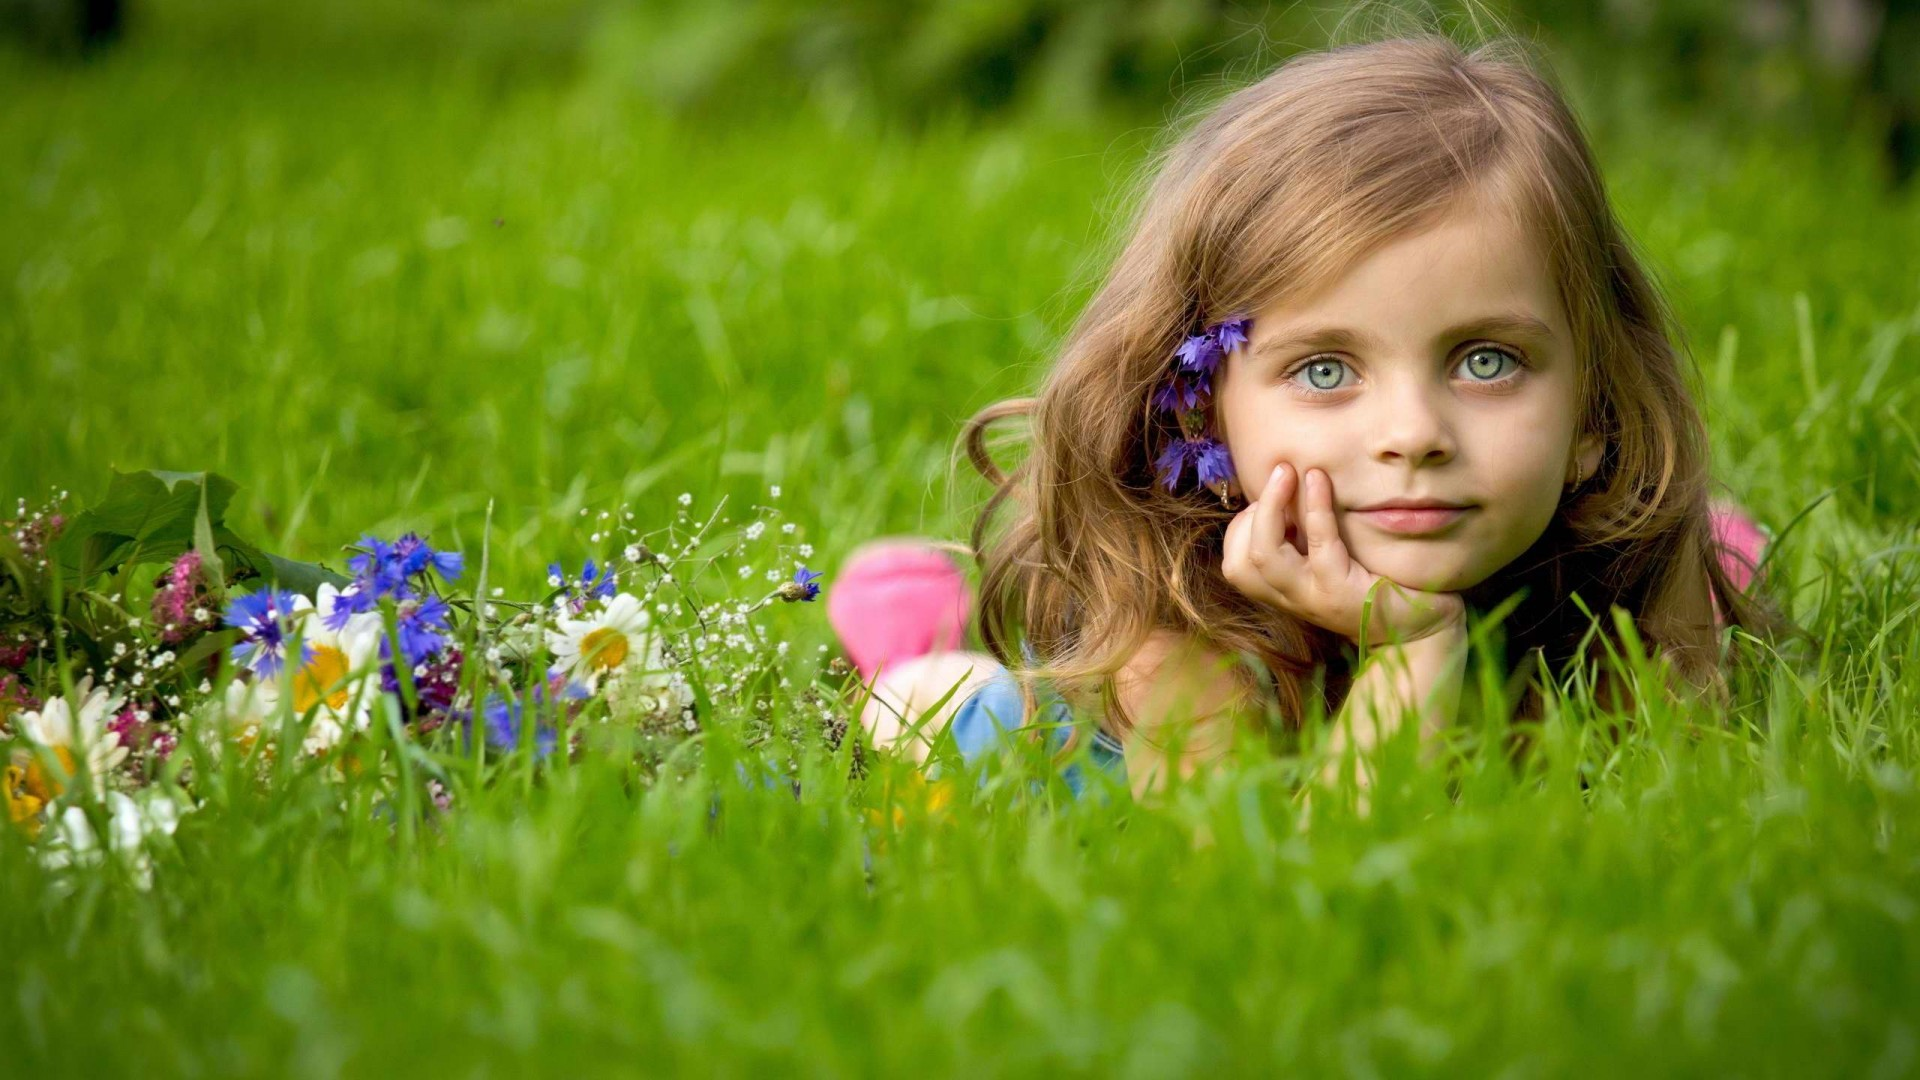 Download Free Baby Wallpapers for Your Mobile Phone | wallpapers hd |  Pinterest | Baby wallpaper